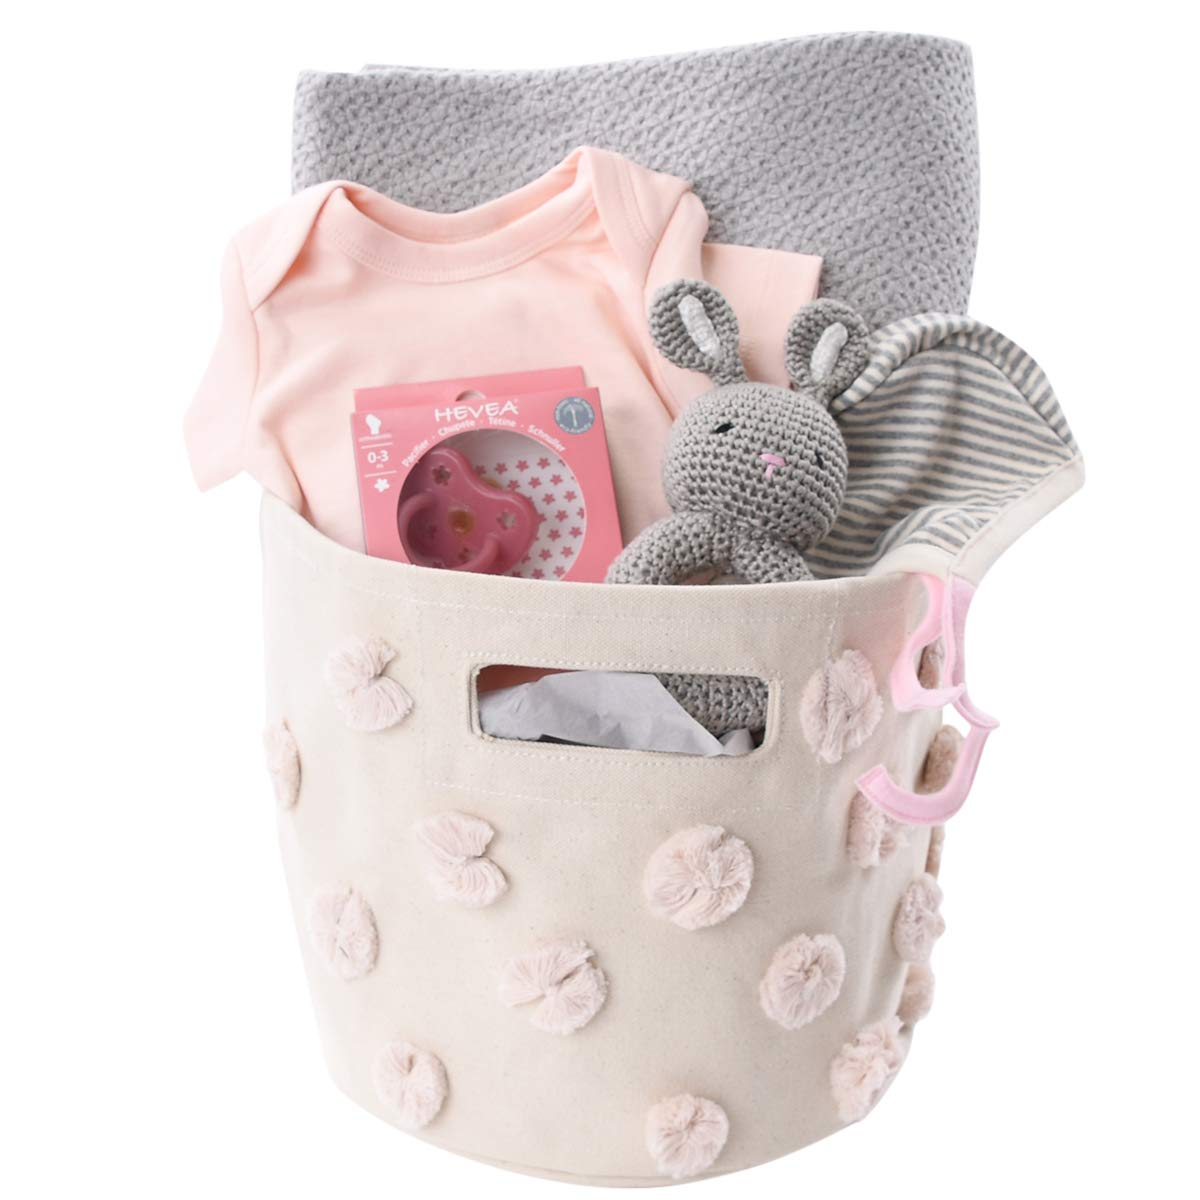 Baby Girl Gift Basket - Pink & Grey